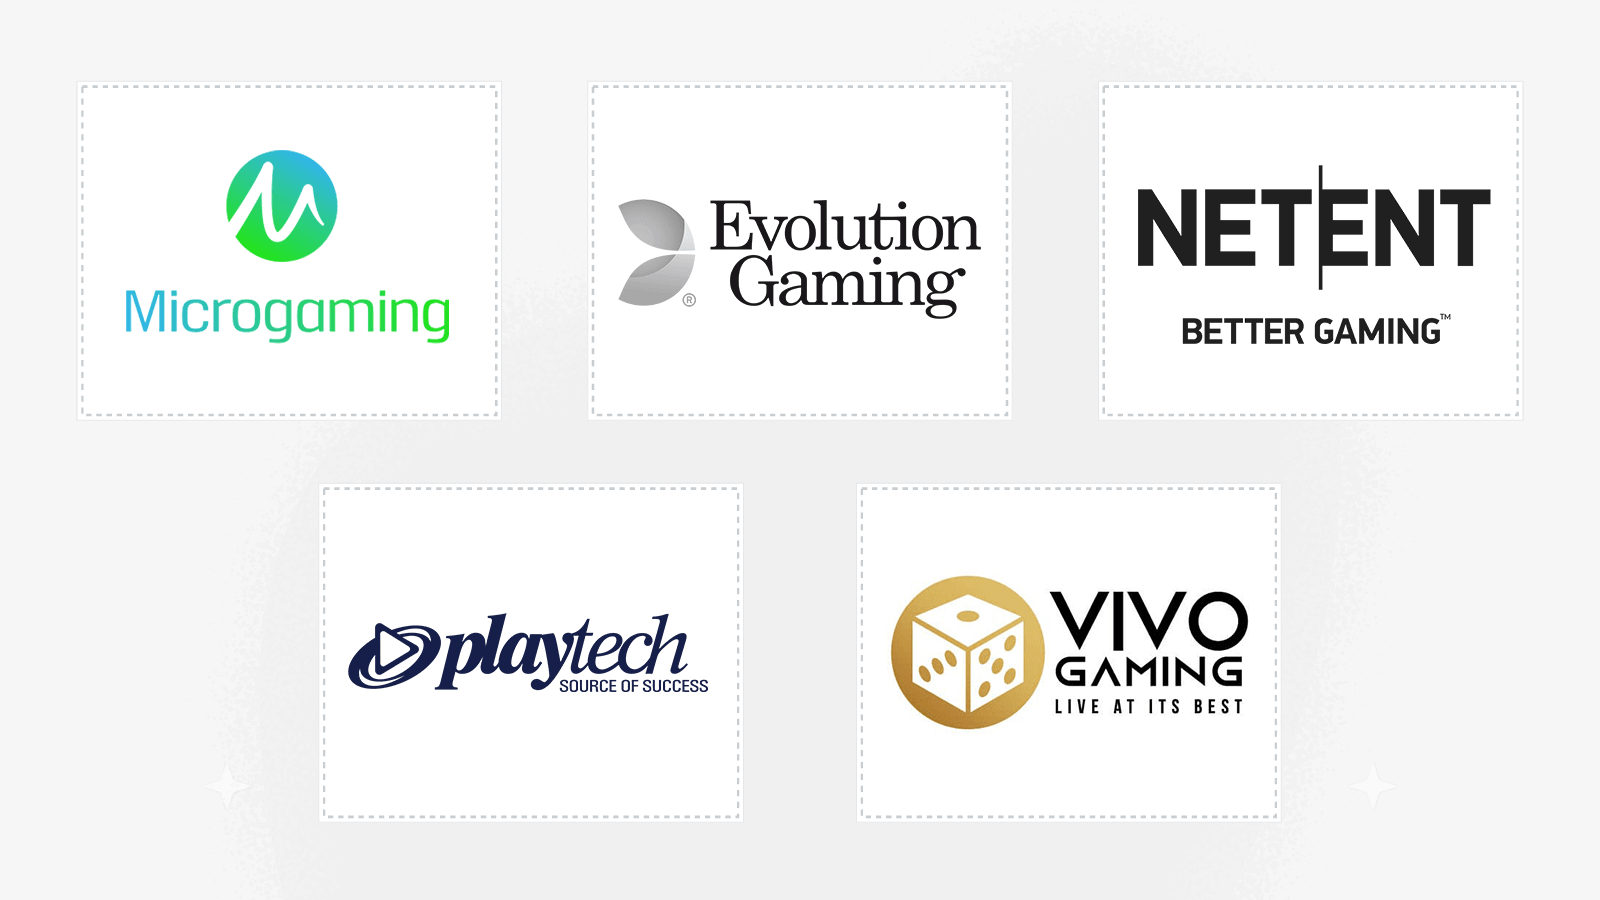 Listing the best Live Game Providers